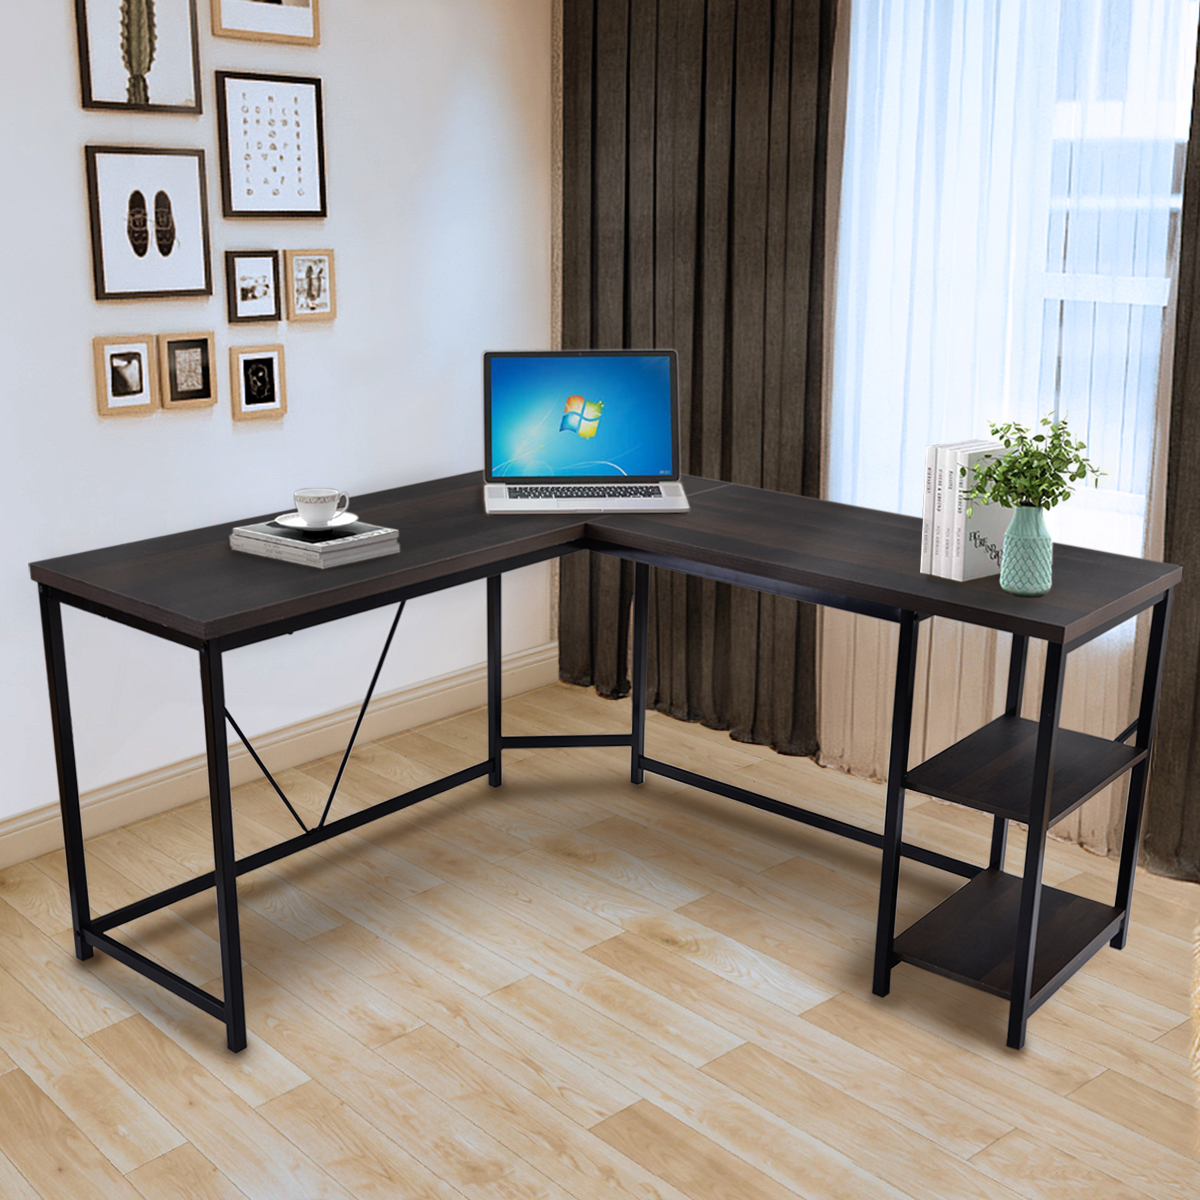 L Shaped Computer Desk Industrial Office Corner Desk With Shelves Writing Study Table Wood Tabletop Home Gaming Desk With Metal Frame Large 2 Person Table For Home Office Workstation K469 Walmart Com